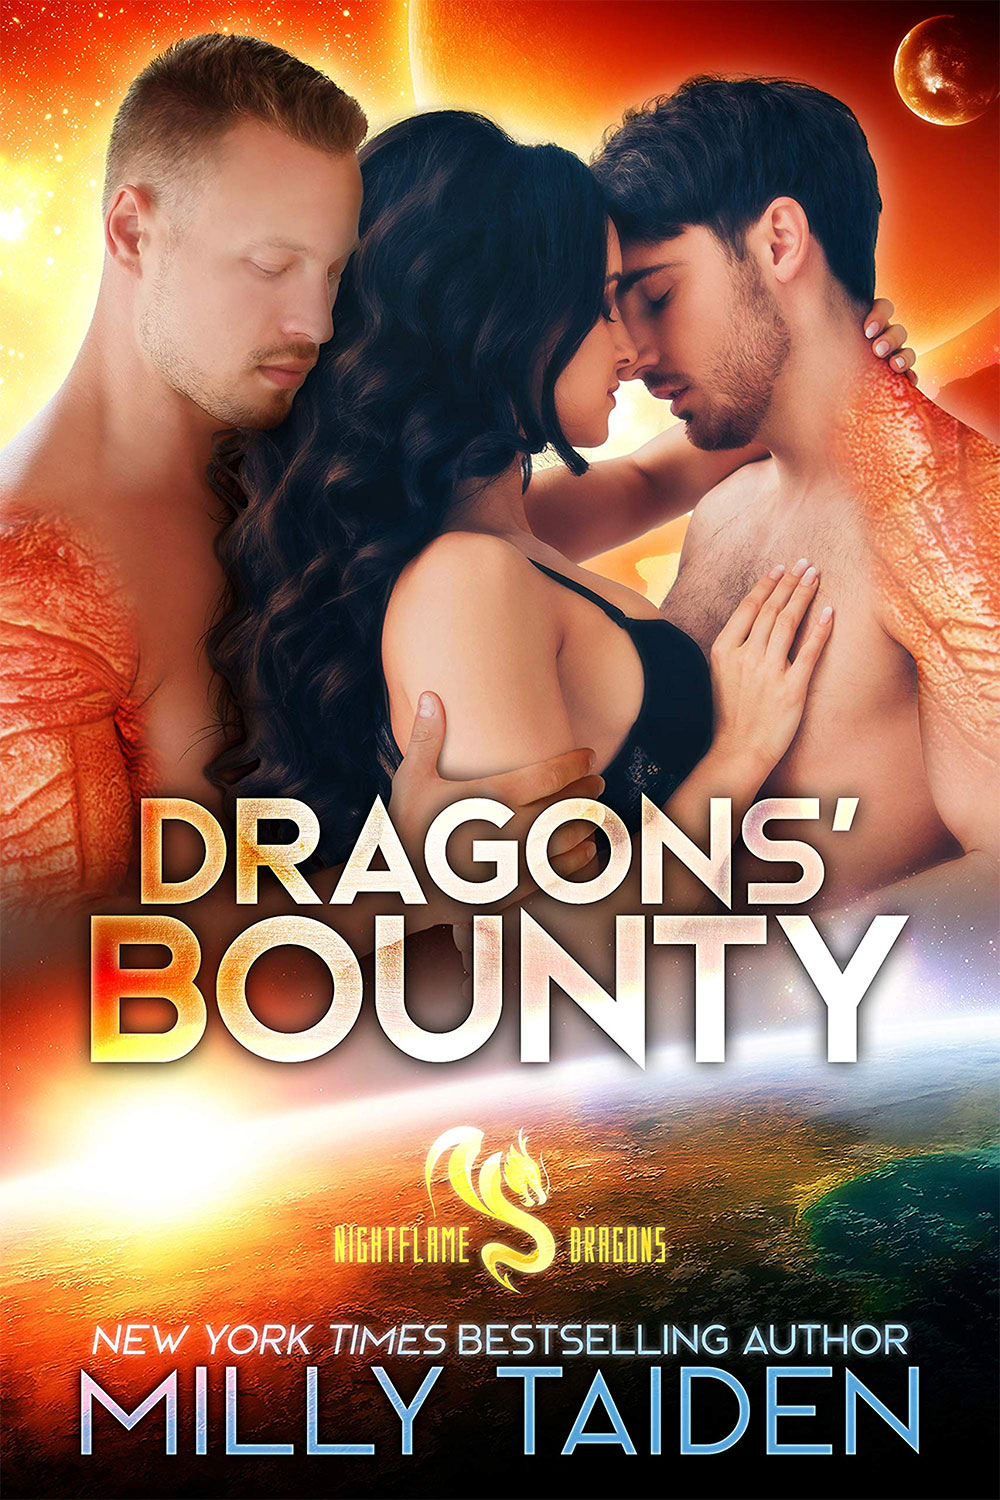 Dragons' Bounty